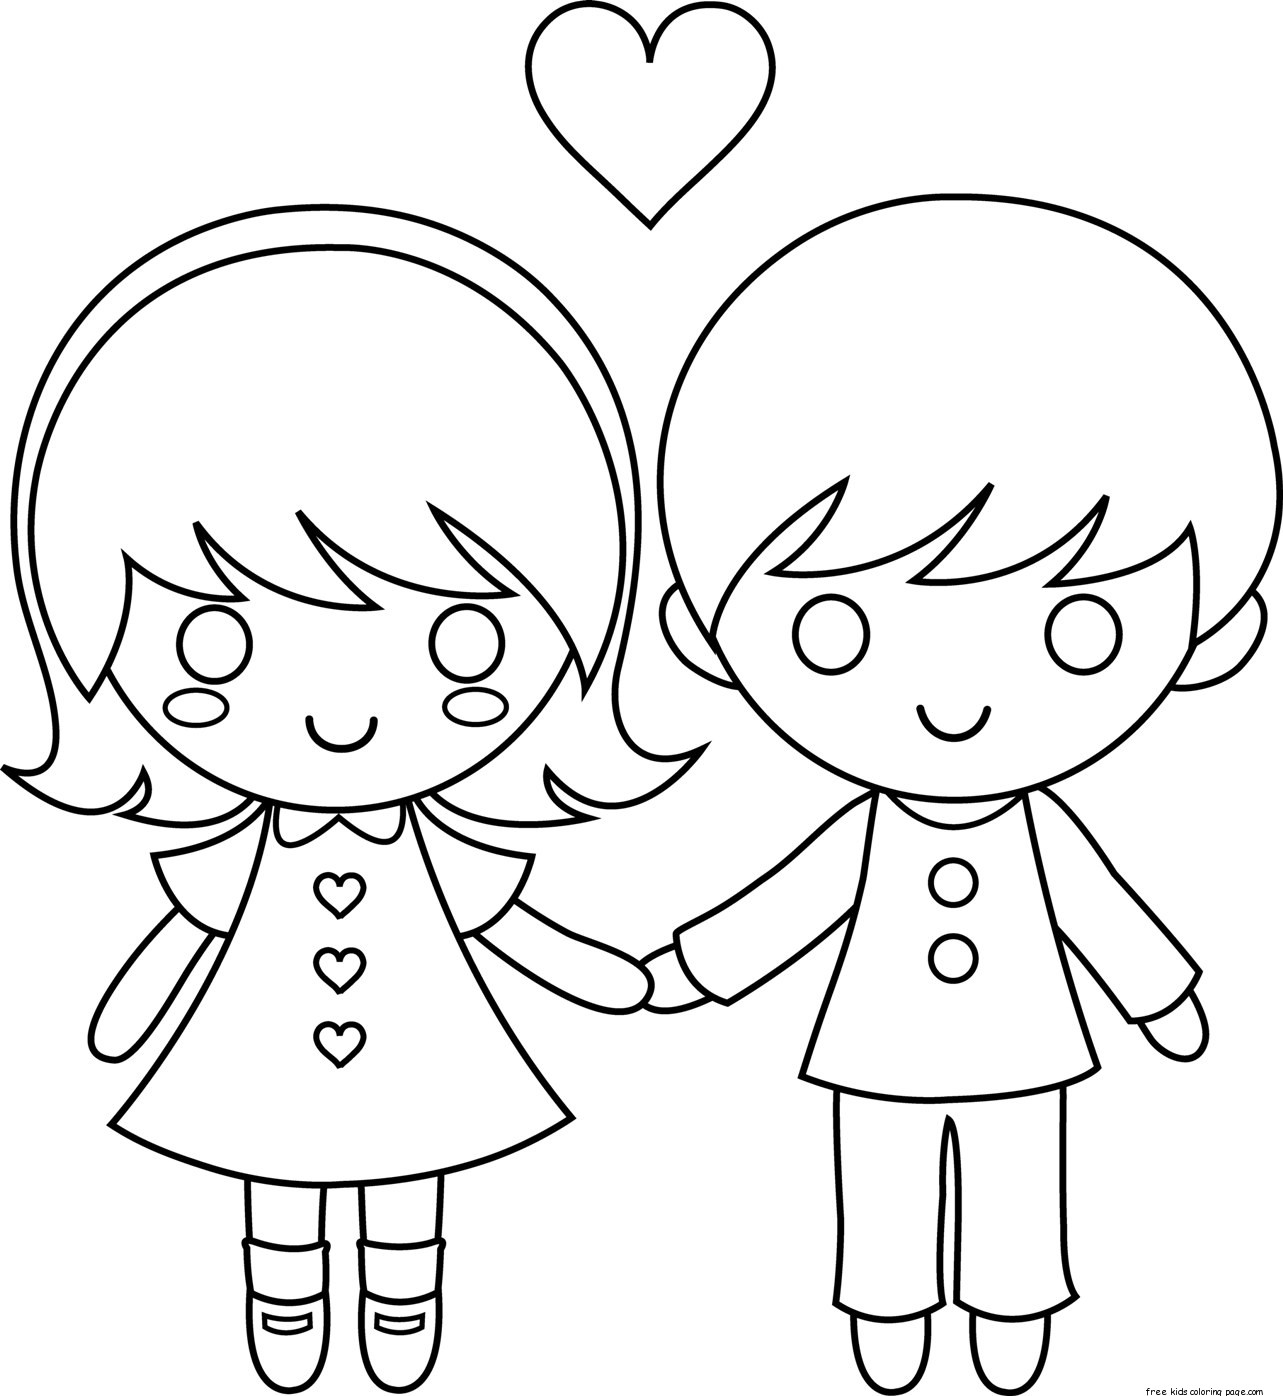 Couple Coloring Pages To Download And Print For Free Colouring Pages Of